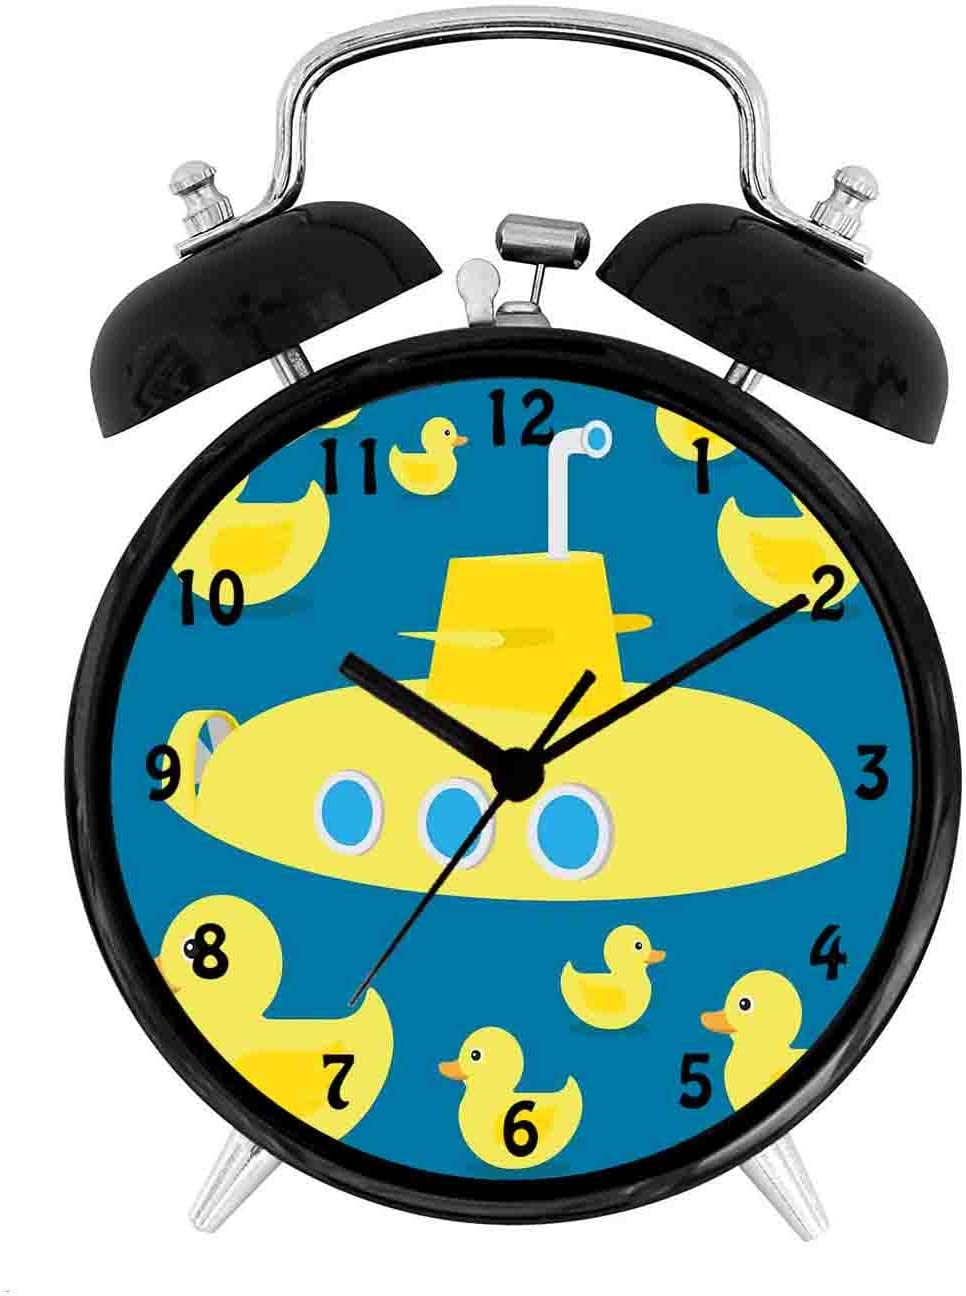 BCWAYGOD Rubber Duck, Duckies Swimming in The Sea with a Yellow Submarine Kids Party Nautical Print,Desk Clock Home Unique Decorative Alarm Ring Clock 4in, Navy Blue